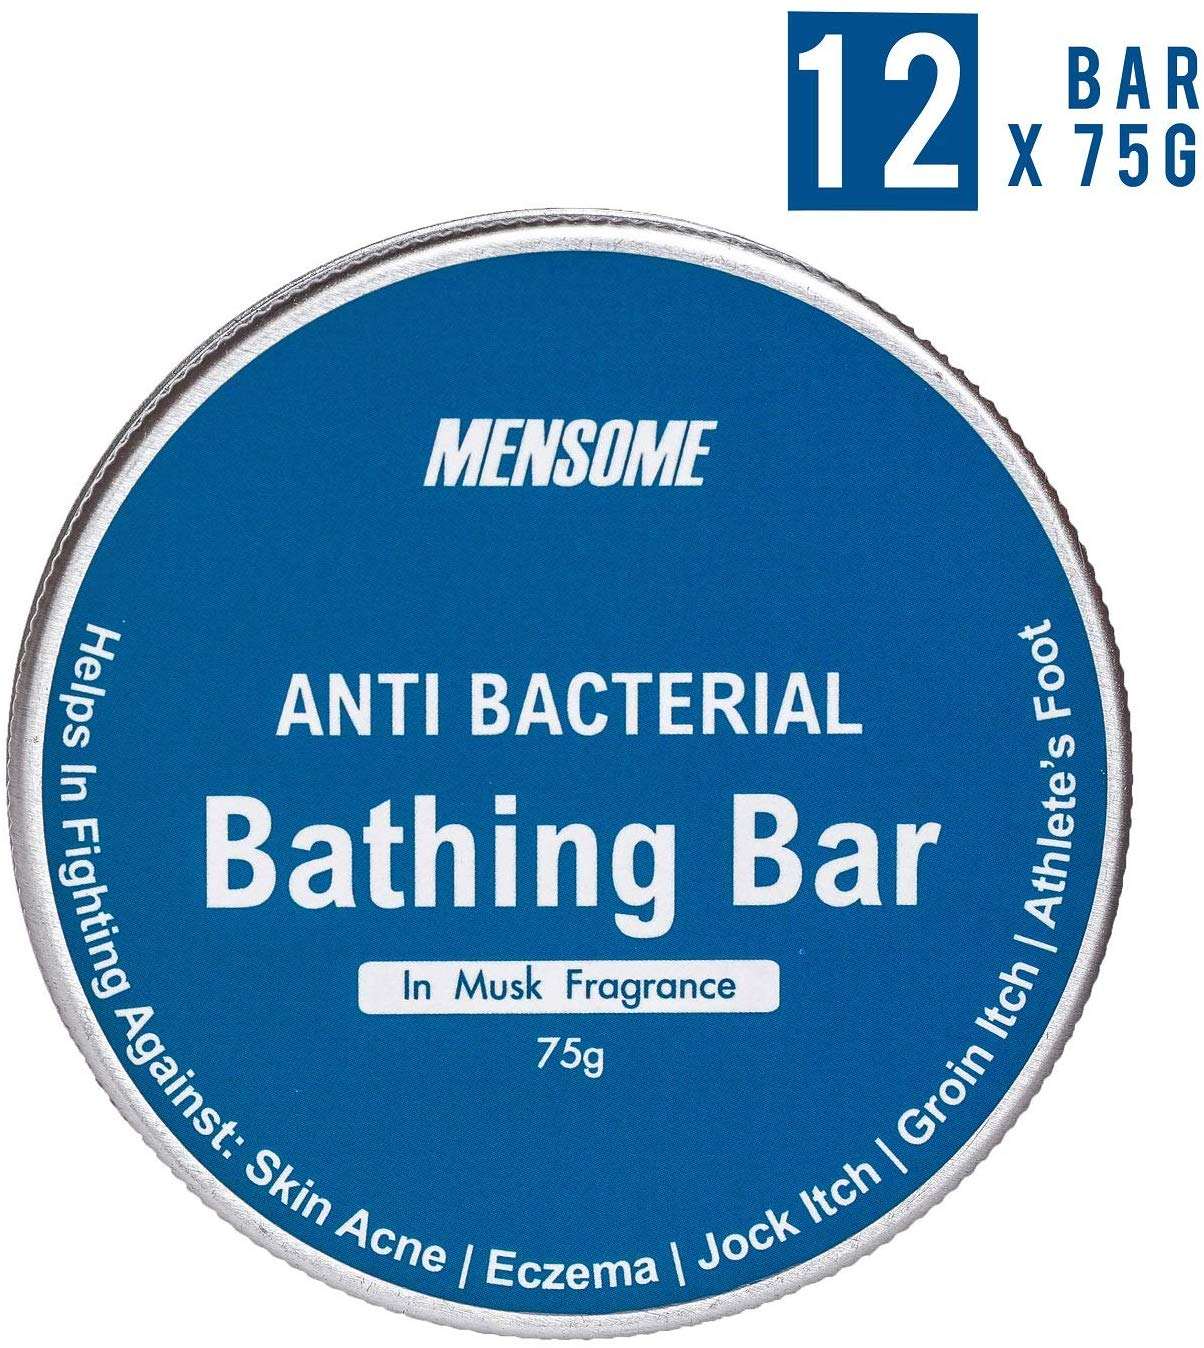 MENSOME Anti Bacterial Bathing Soap Bar Helps in fighting Skin Infections, Acne, Itching and made up of natural oils and herbs in Pack of 12(Musk Fragrance)